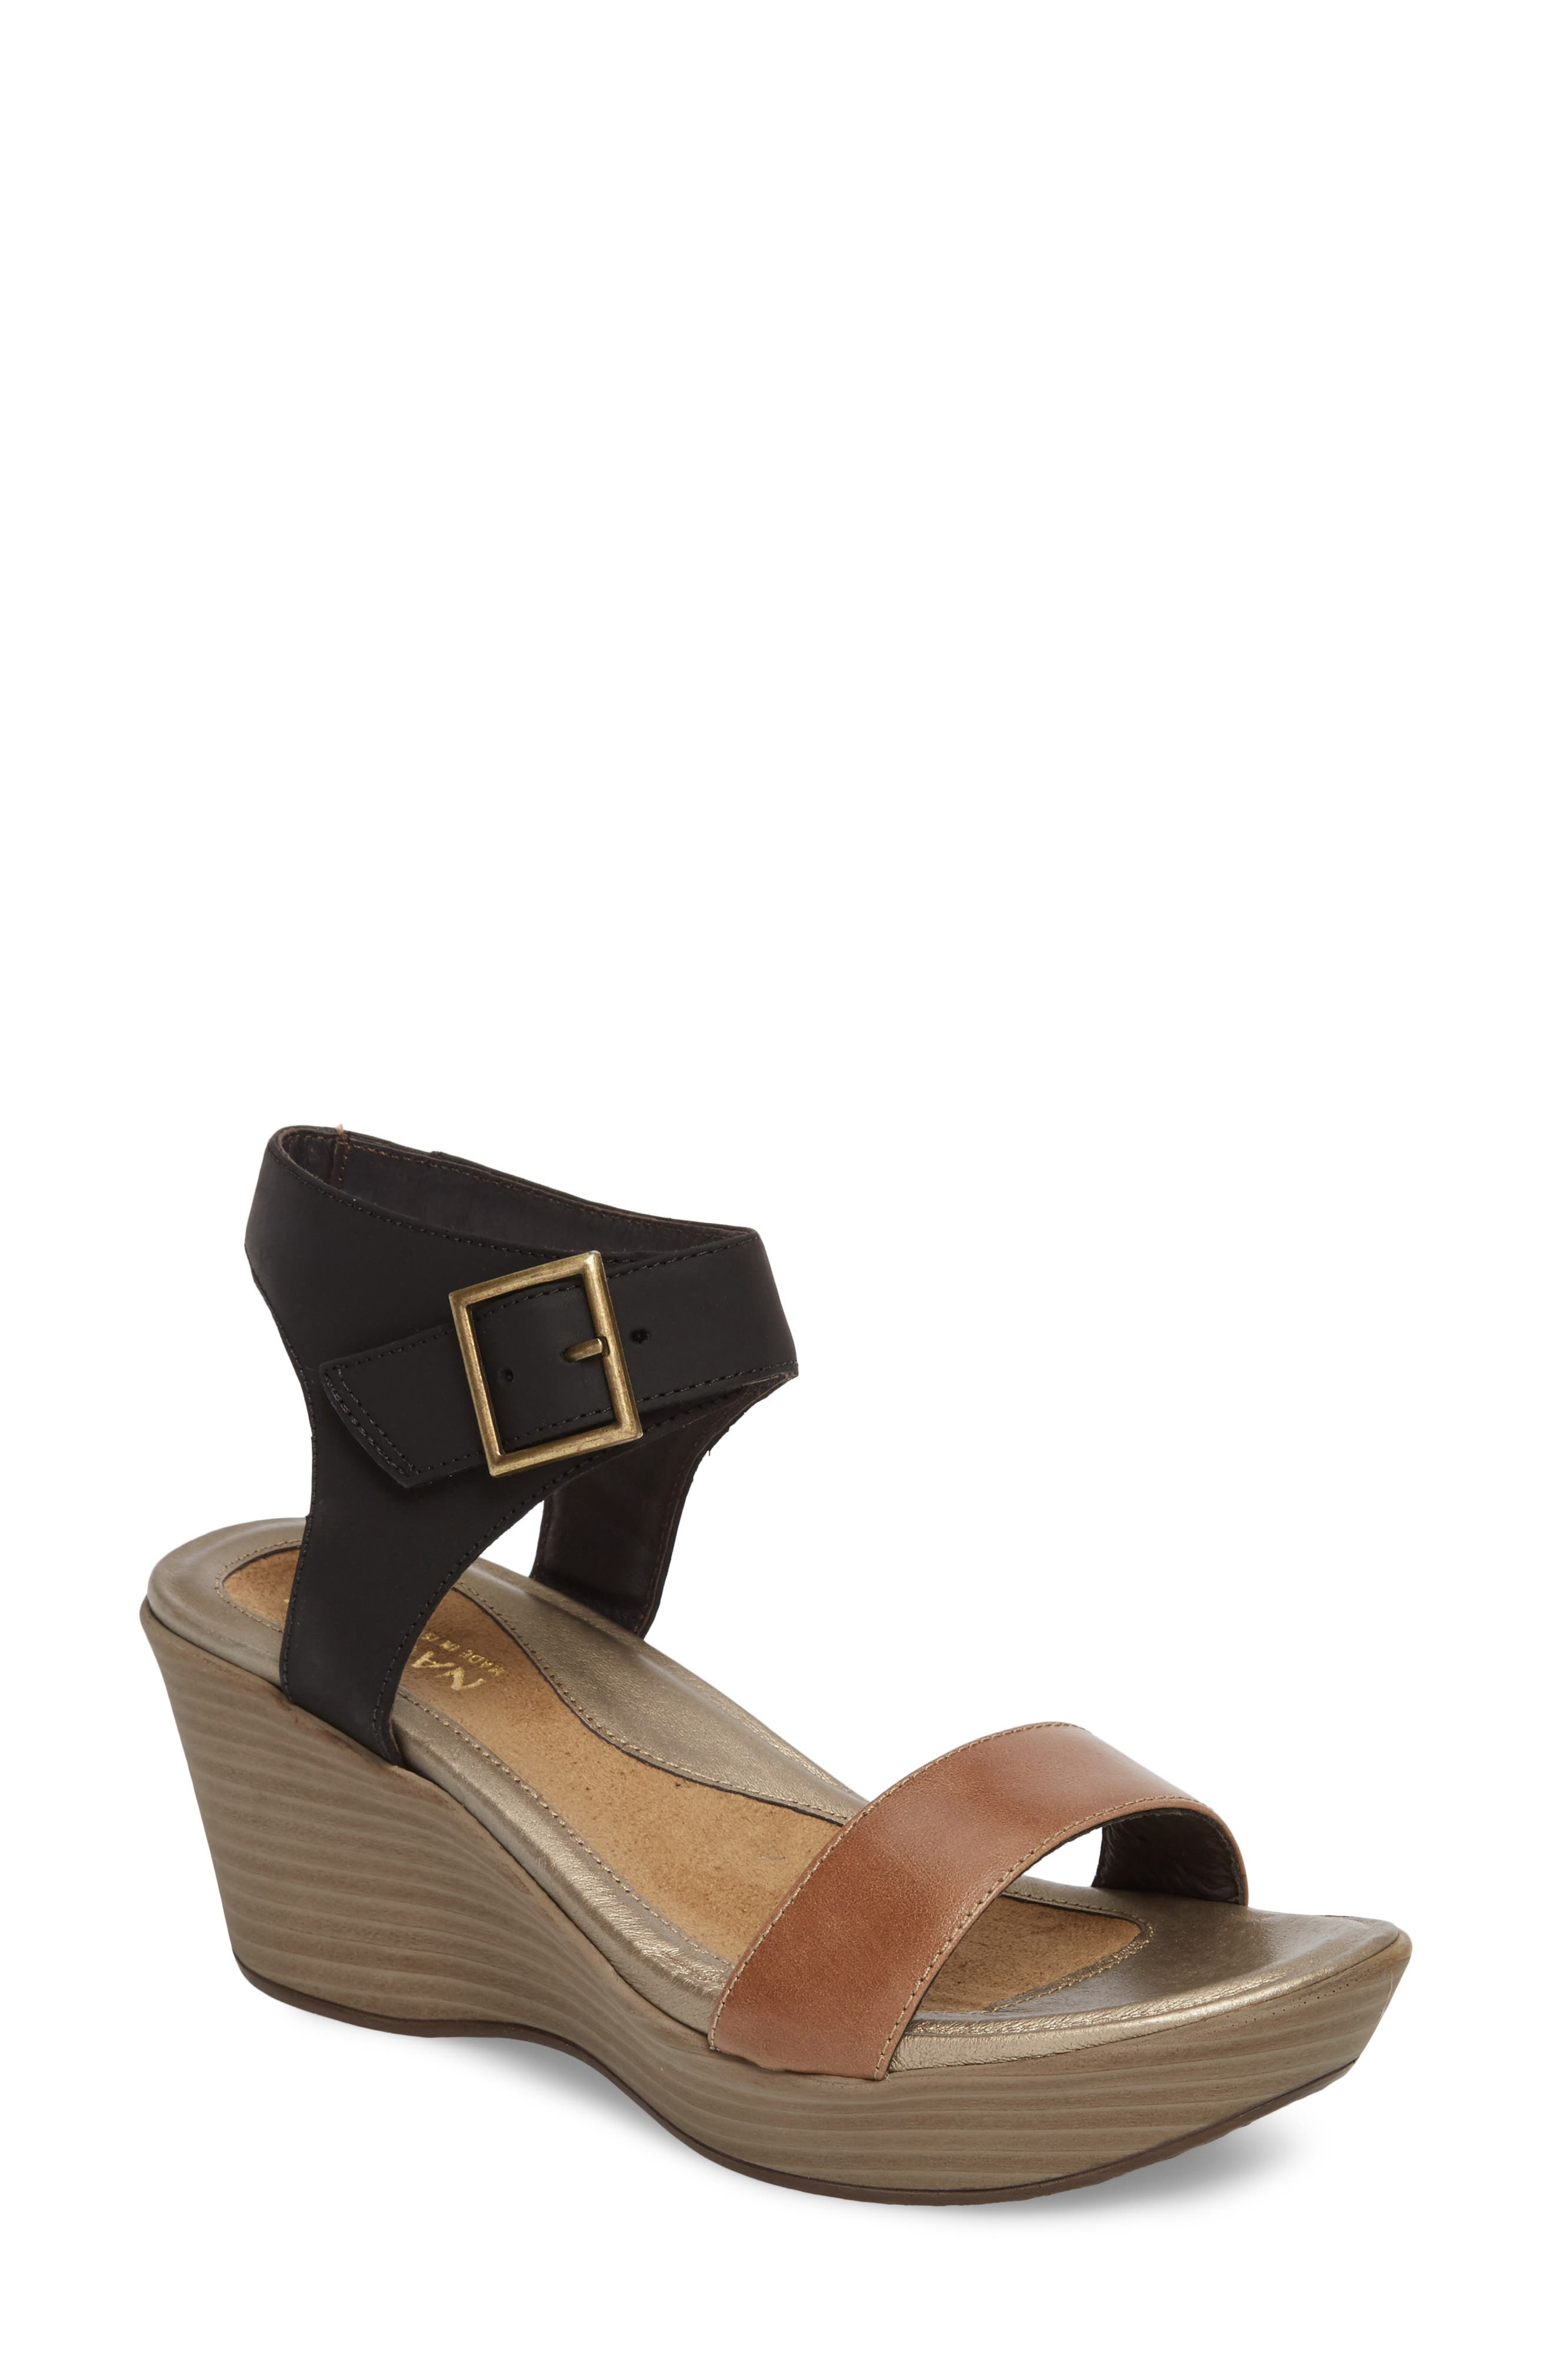 Caprice Wedge Sandal,                         Main,                         color, TAN LEATHER